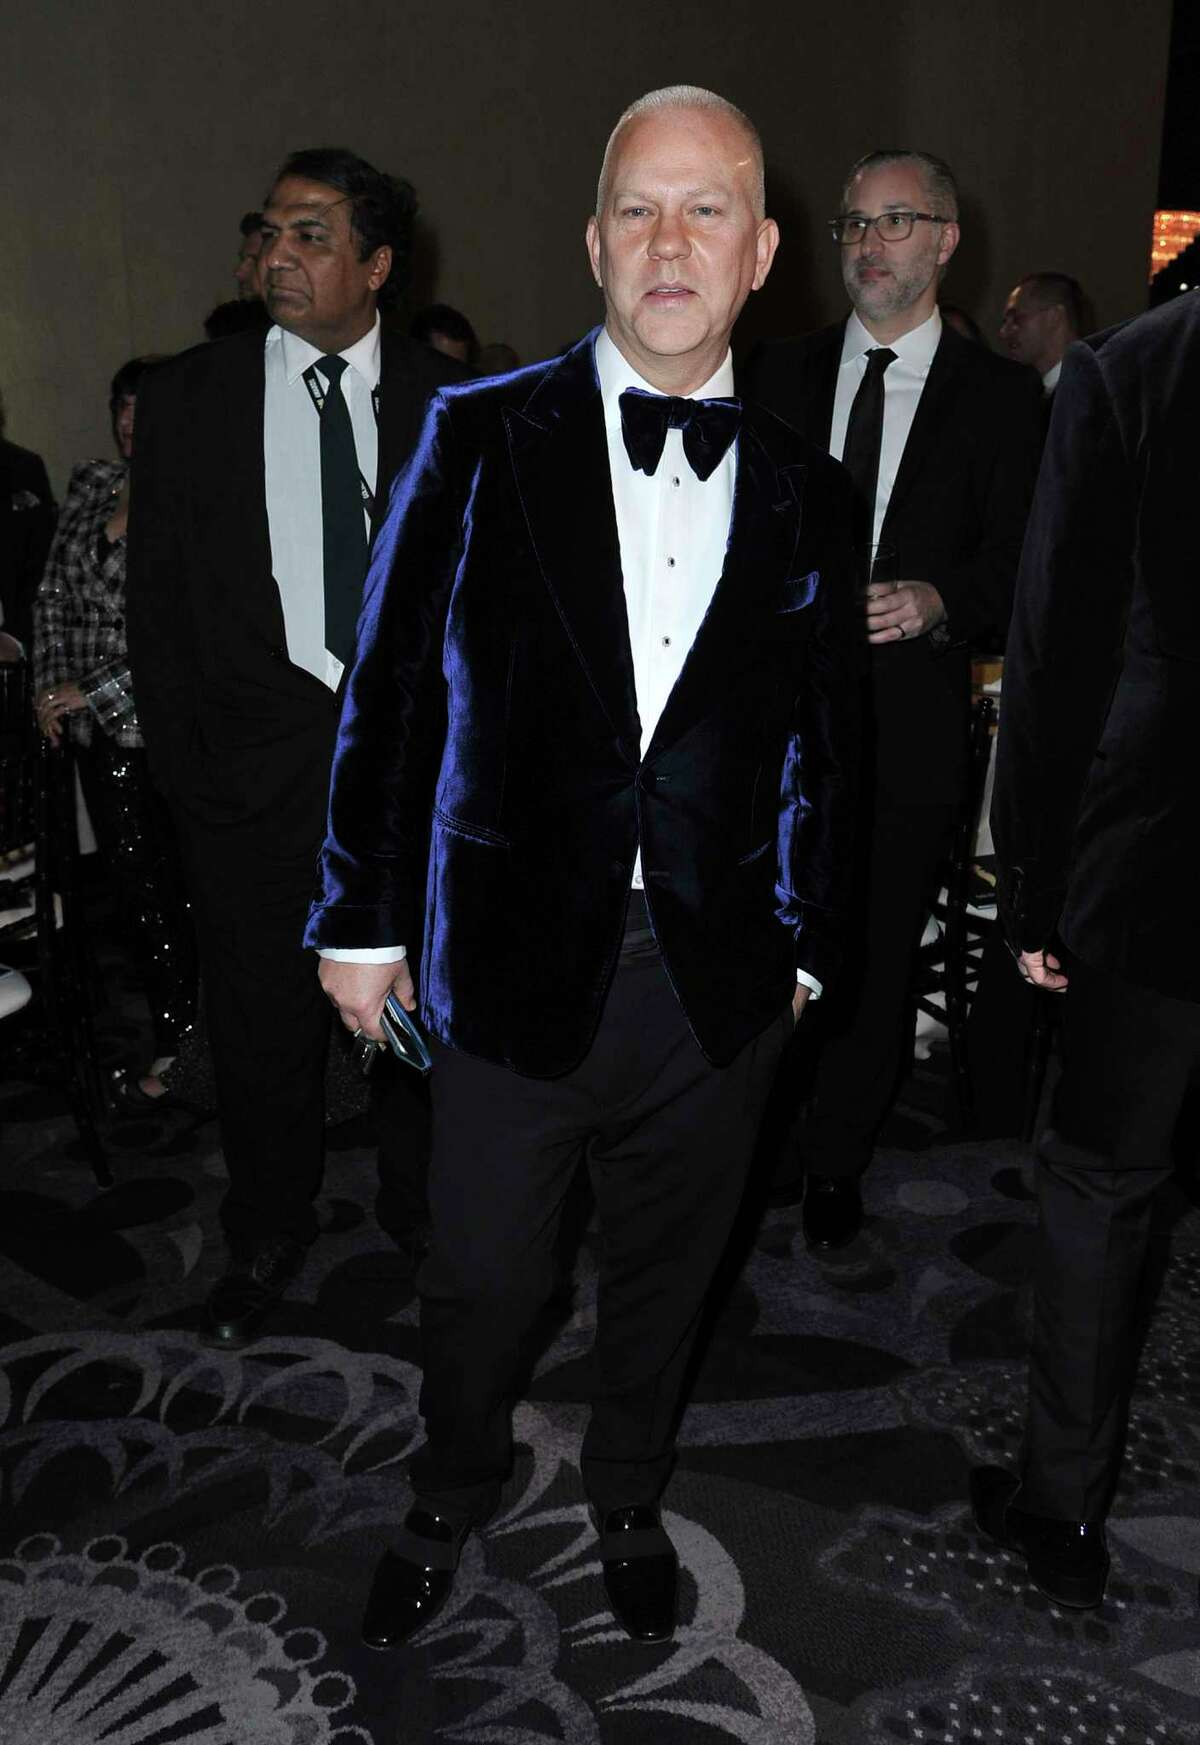 Ryan Murphy attends the 77th annual Golden Globe Awards at the Beverly Hilton Hotel on Sunday, Jan. 5, 2020, in Beverly Hills, Calif. (Richard Shotwell/Invision/AP)